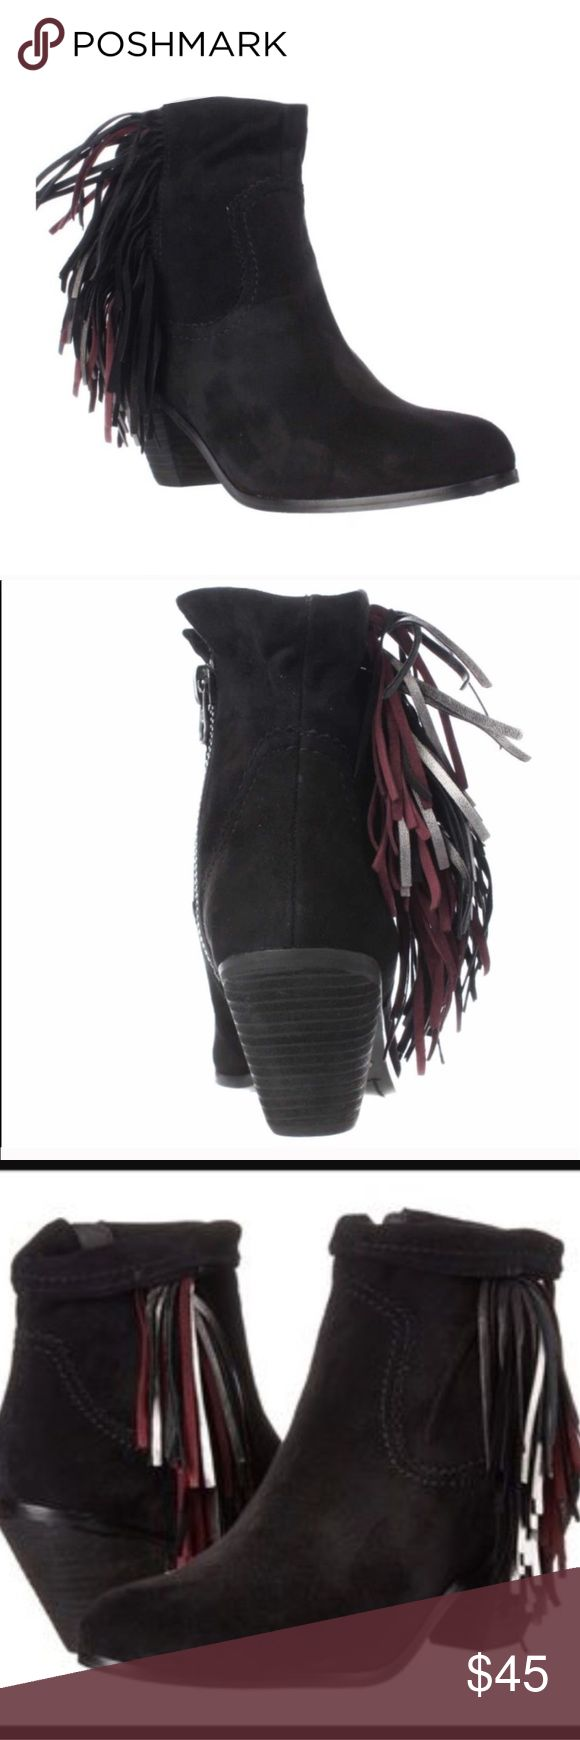 """Sam Edelman Louie Style Booties New, never worn, Sam Edelman Louie style booties with maroon, silver and black side fringes! There is some writing on the bottom of the shoes, but obviously this doesn't effect the shoes themselves. A cascade of tassels falls down to the heel of a chic ankle boot featuring a collar that can be cuffed for a different look. Side zip closure • Approx. heel height: 2 1/4"""" • Approx. boot shaft height: 5"""" uncuffed • Suede upper/synthetic lining and sole. Get them at…"""